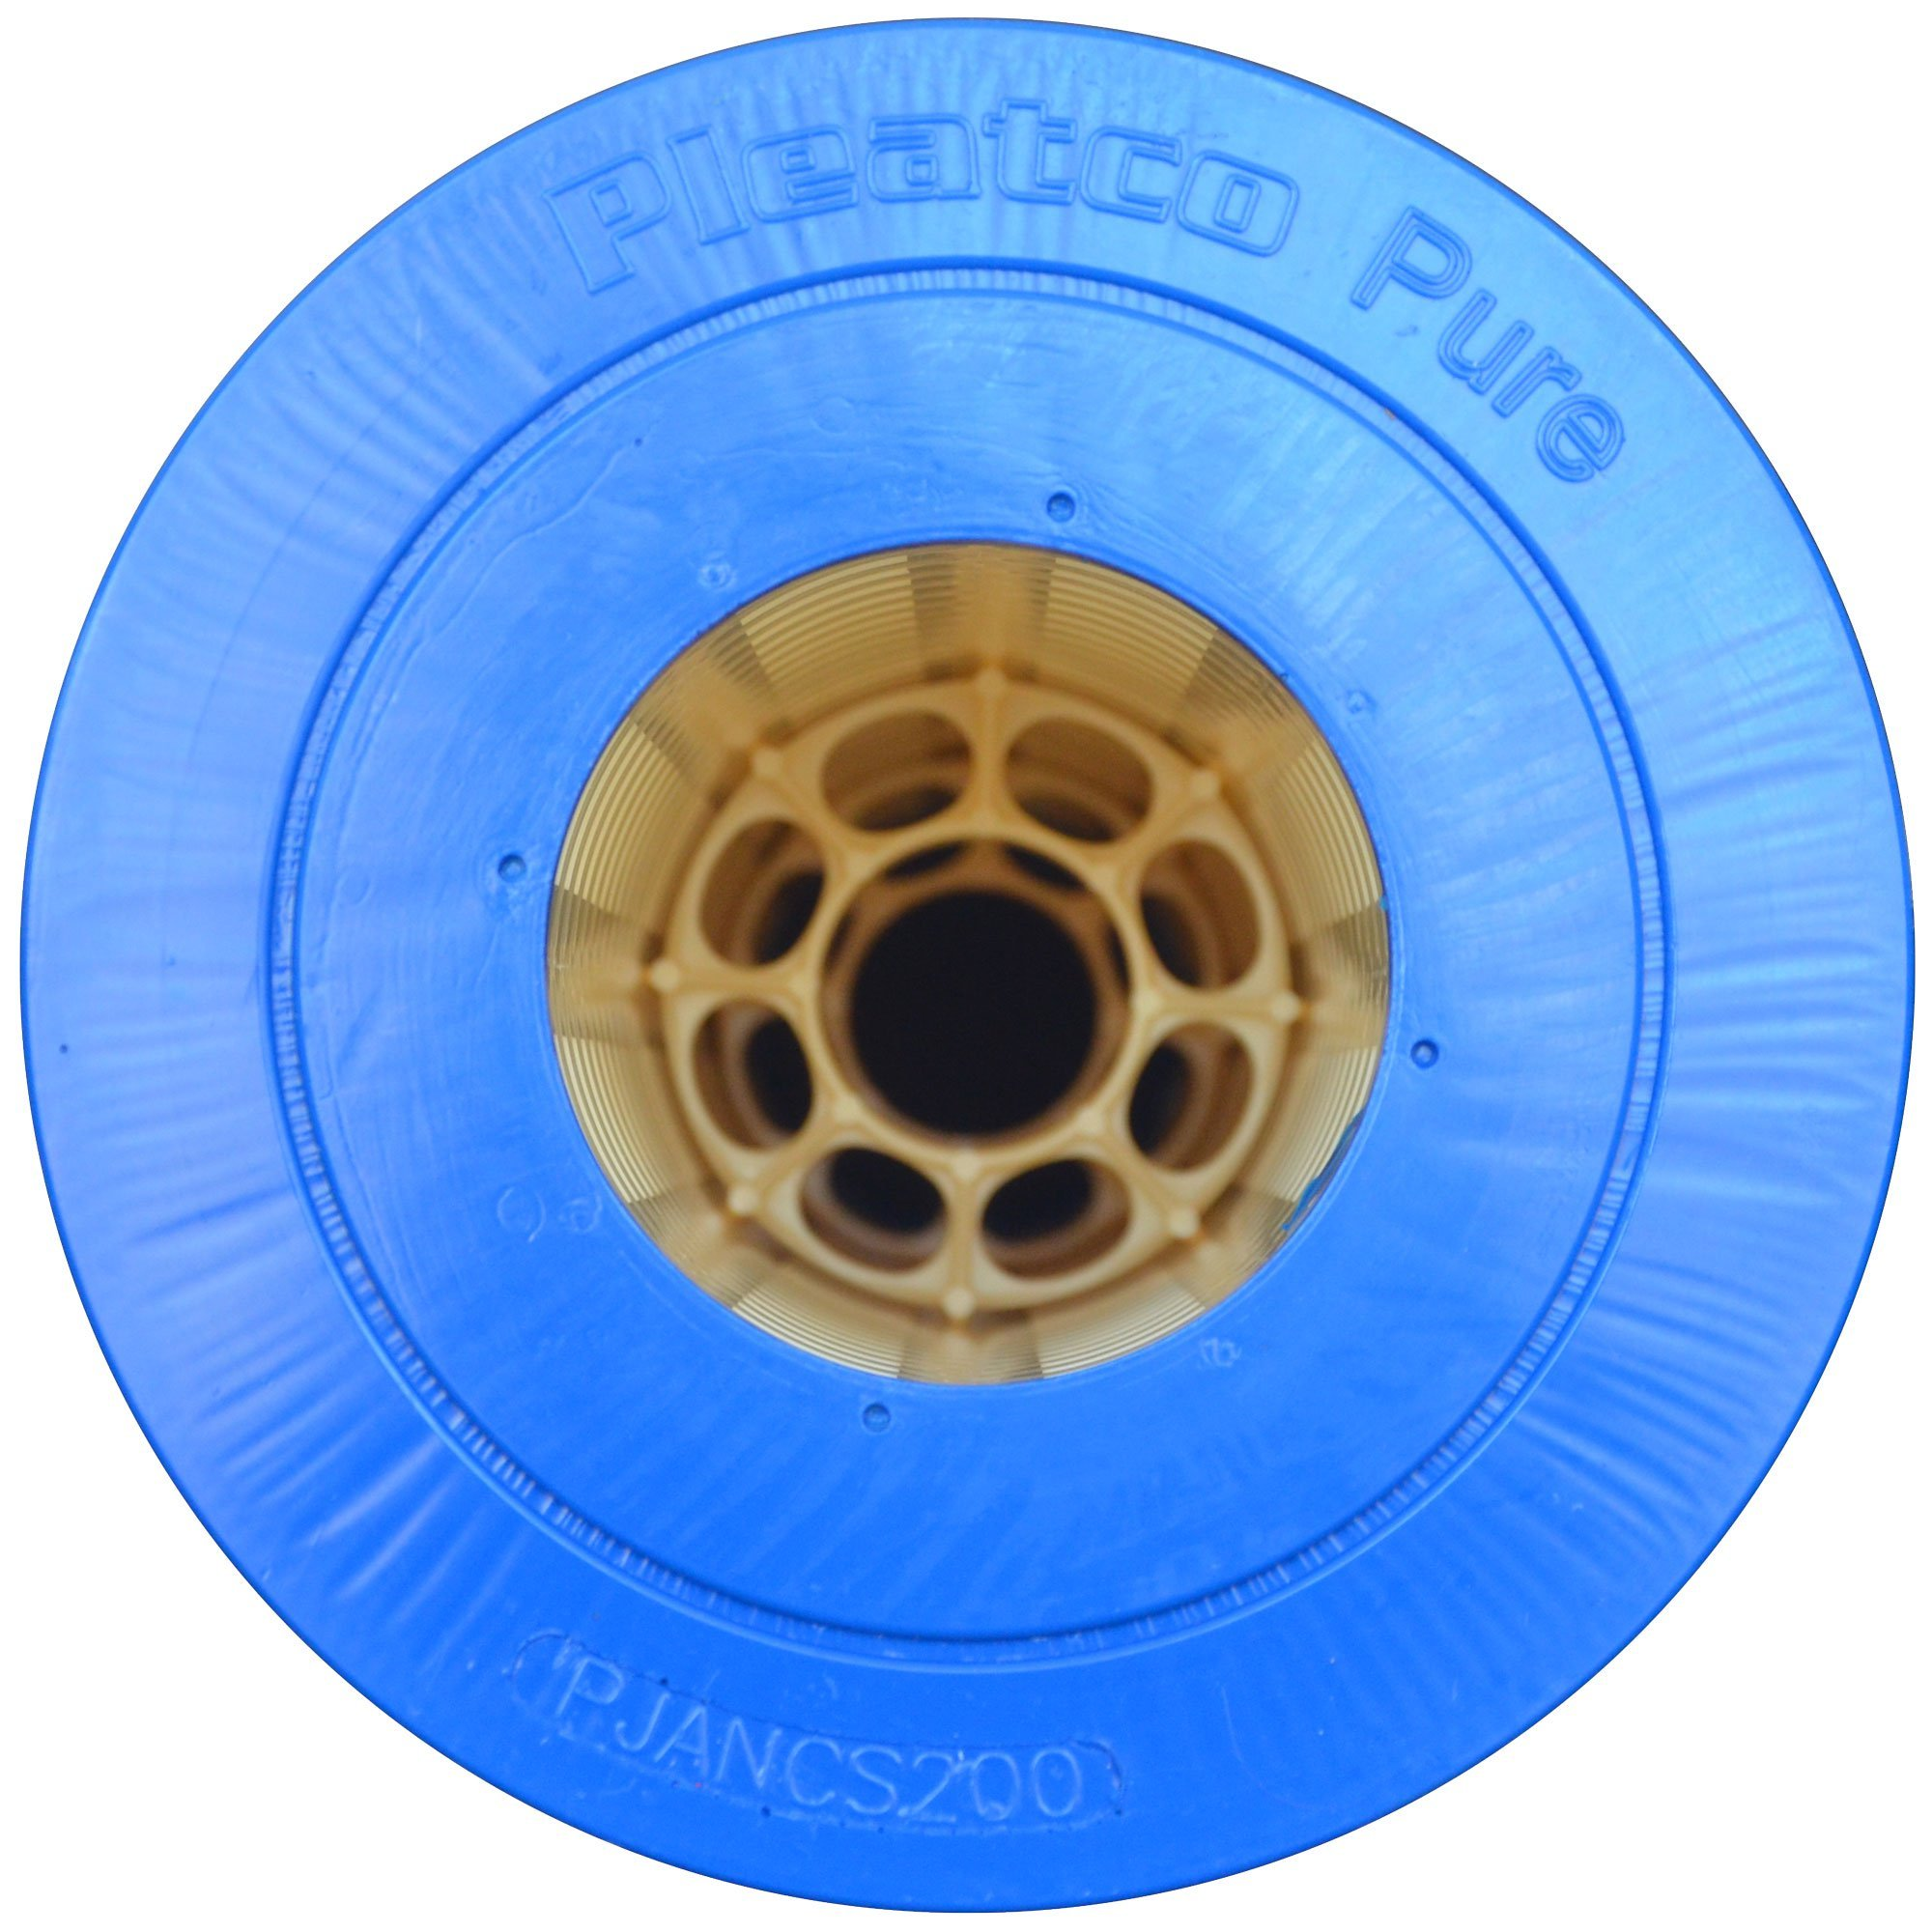 Pleatco PJANCS200-4 Replacement Cartridge for Jandy Industries CS 200, 1 Cartridge by Pleatco